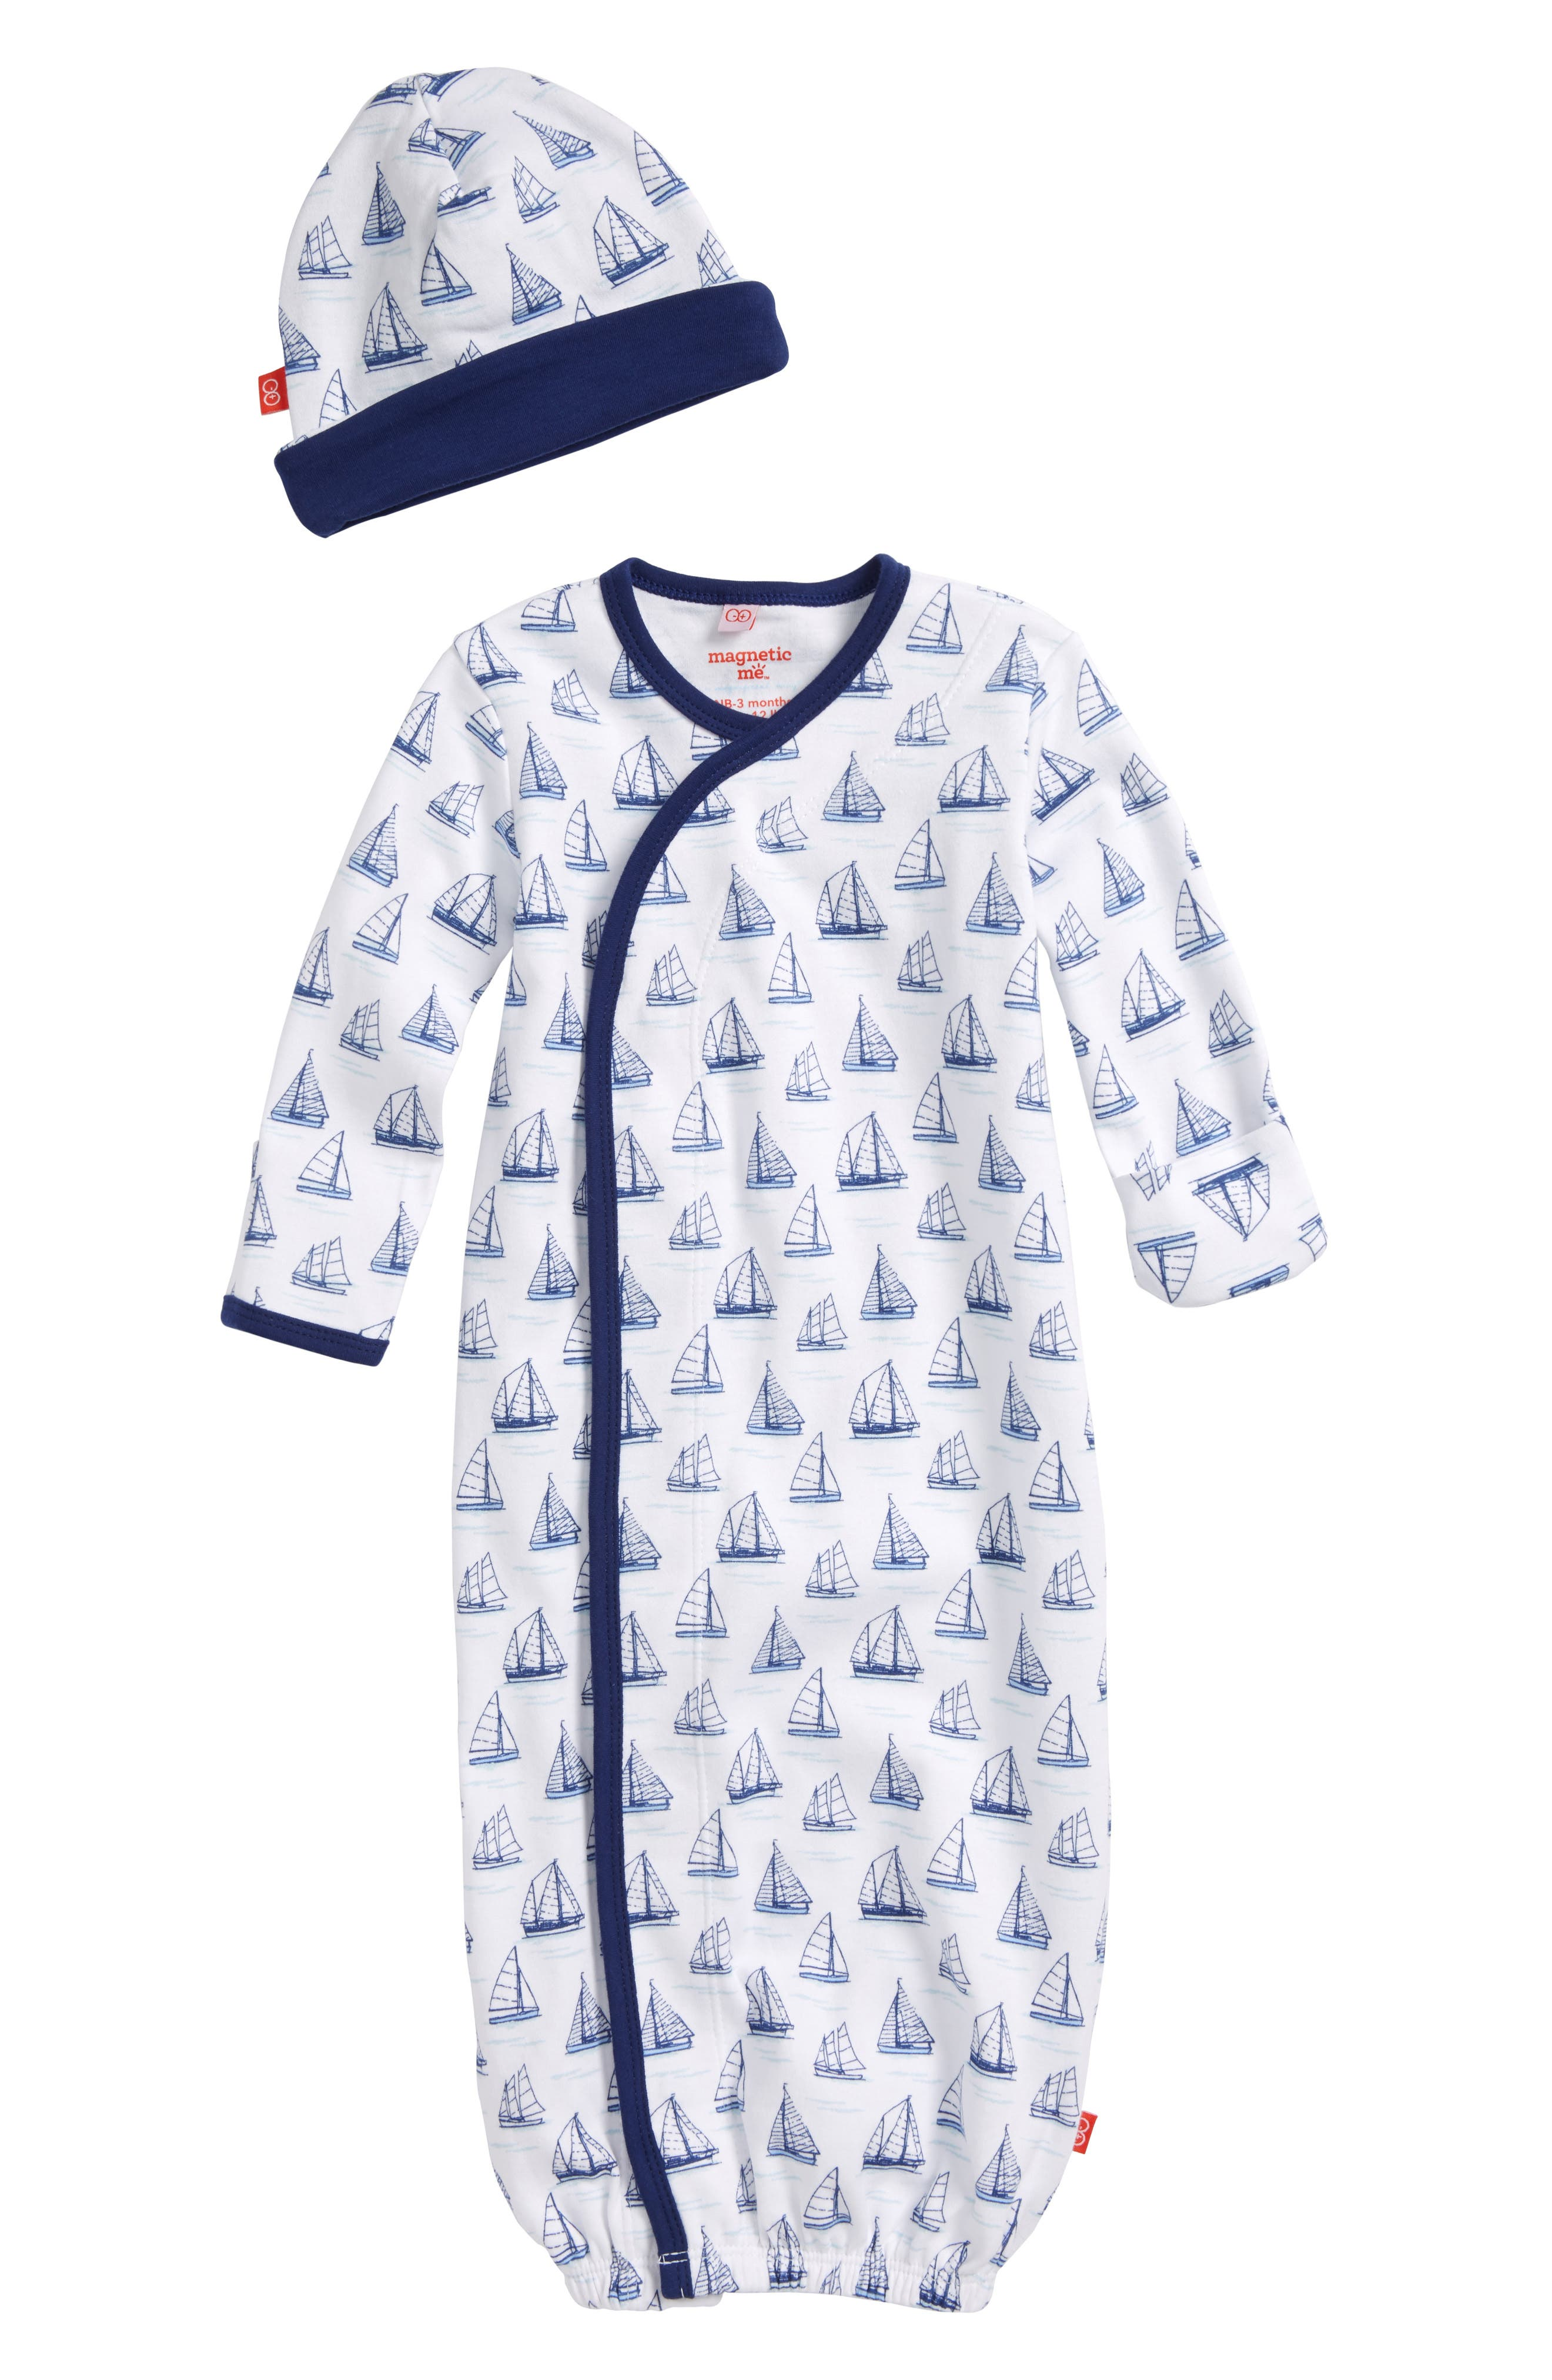 Alternate Image 1 Selected - Magnetic Me Tall Ships Print Gown & Hat Set (Baby)